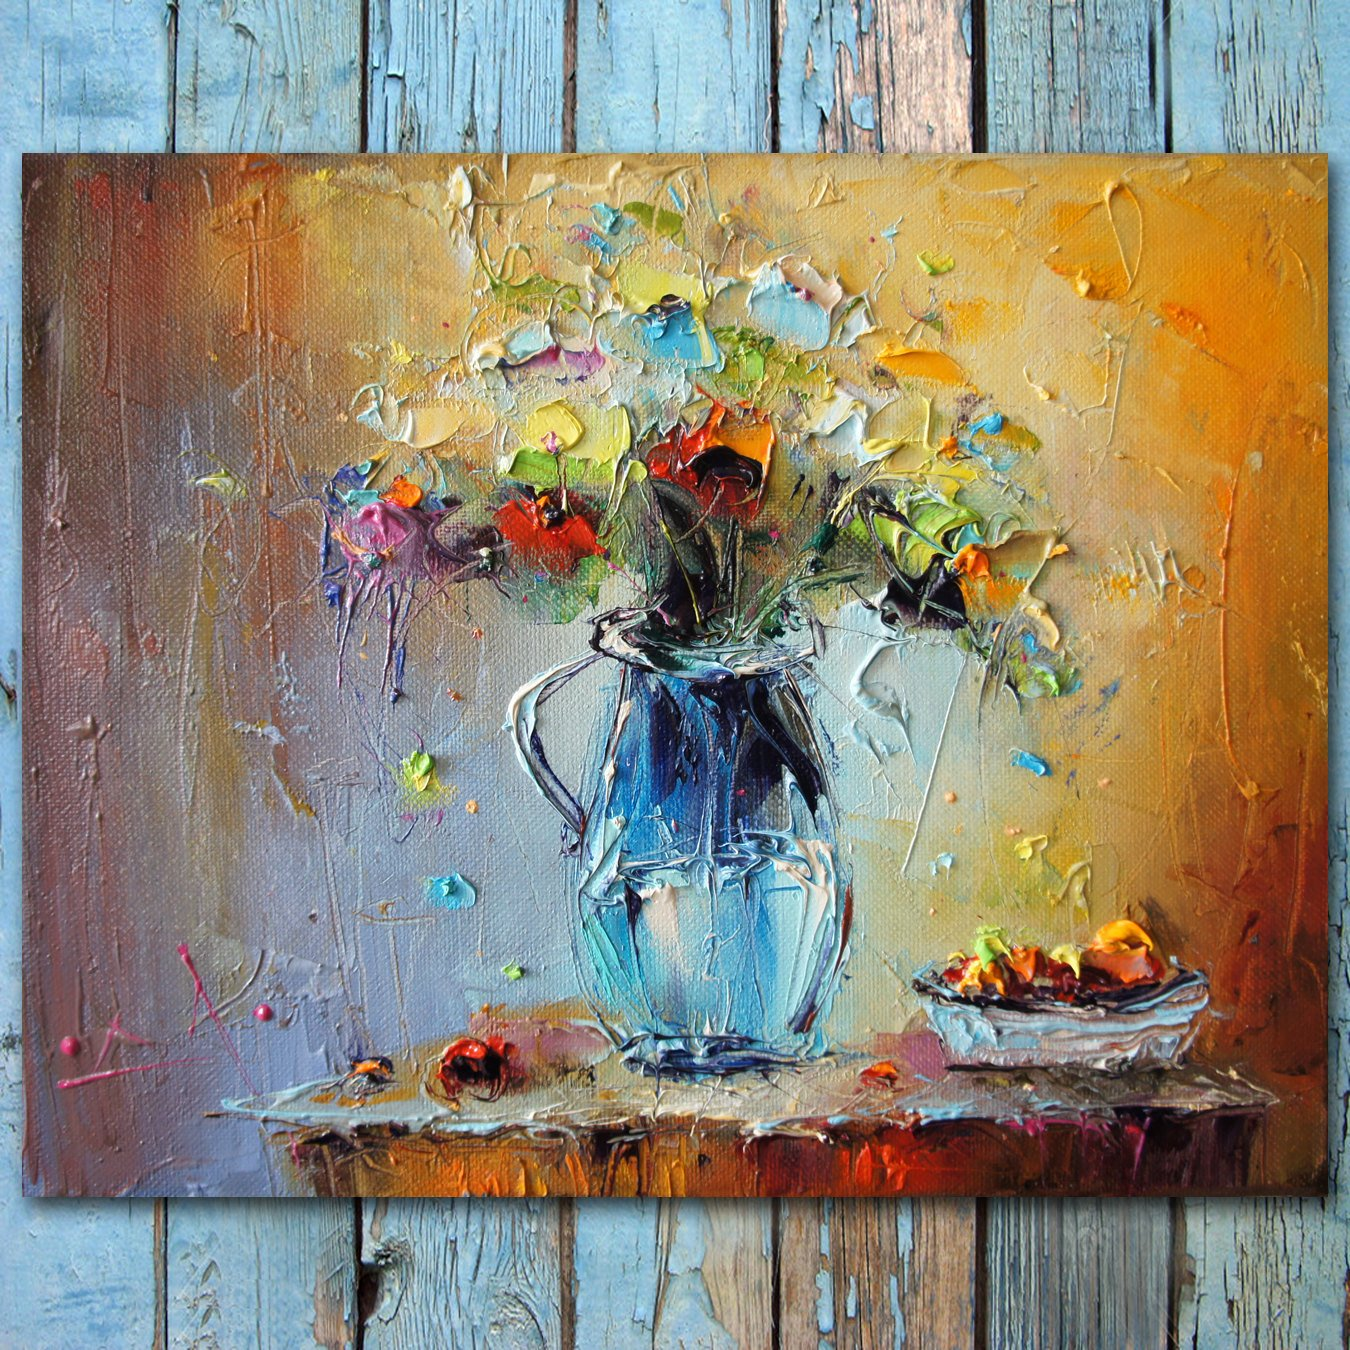 Abstract Painting Of Flowers Fresh Palette Knife Flowers Oil Painting Colorful Still Life